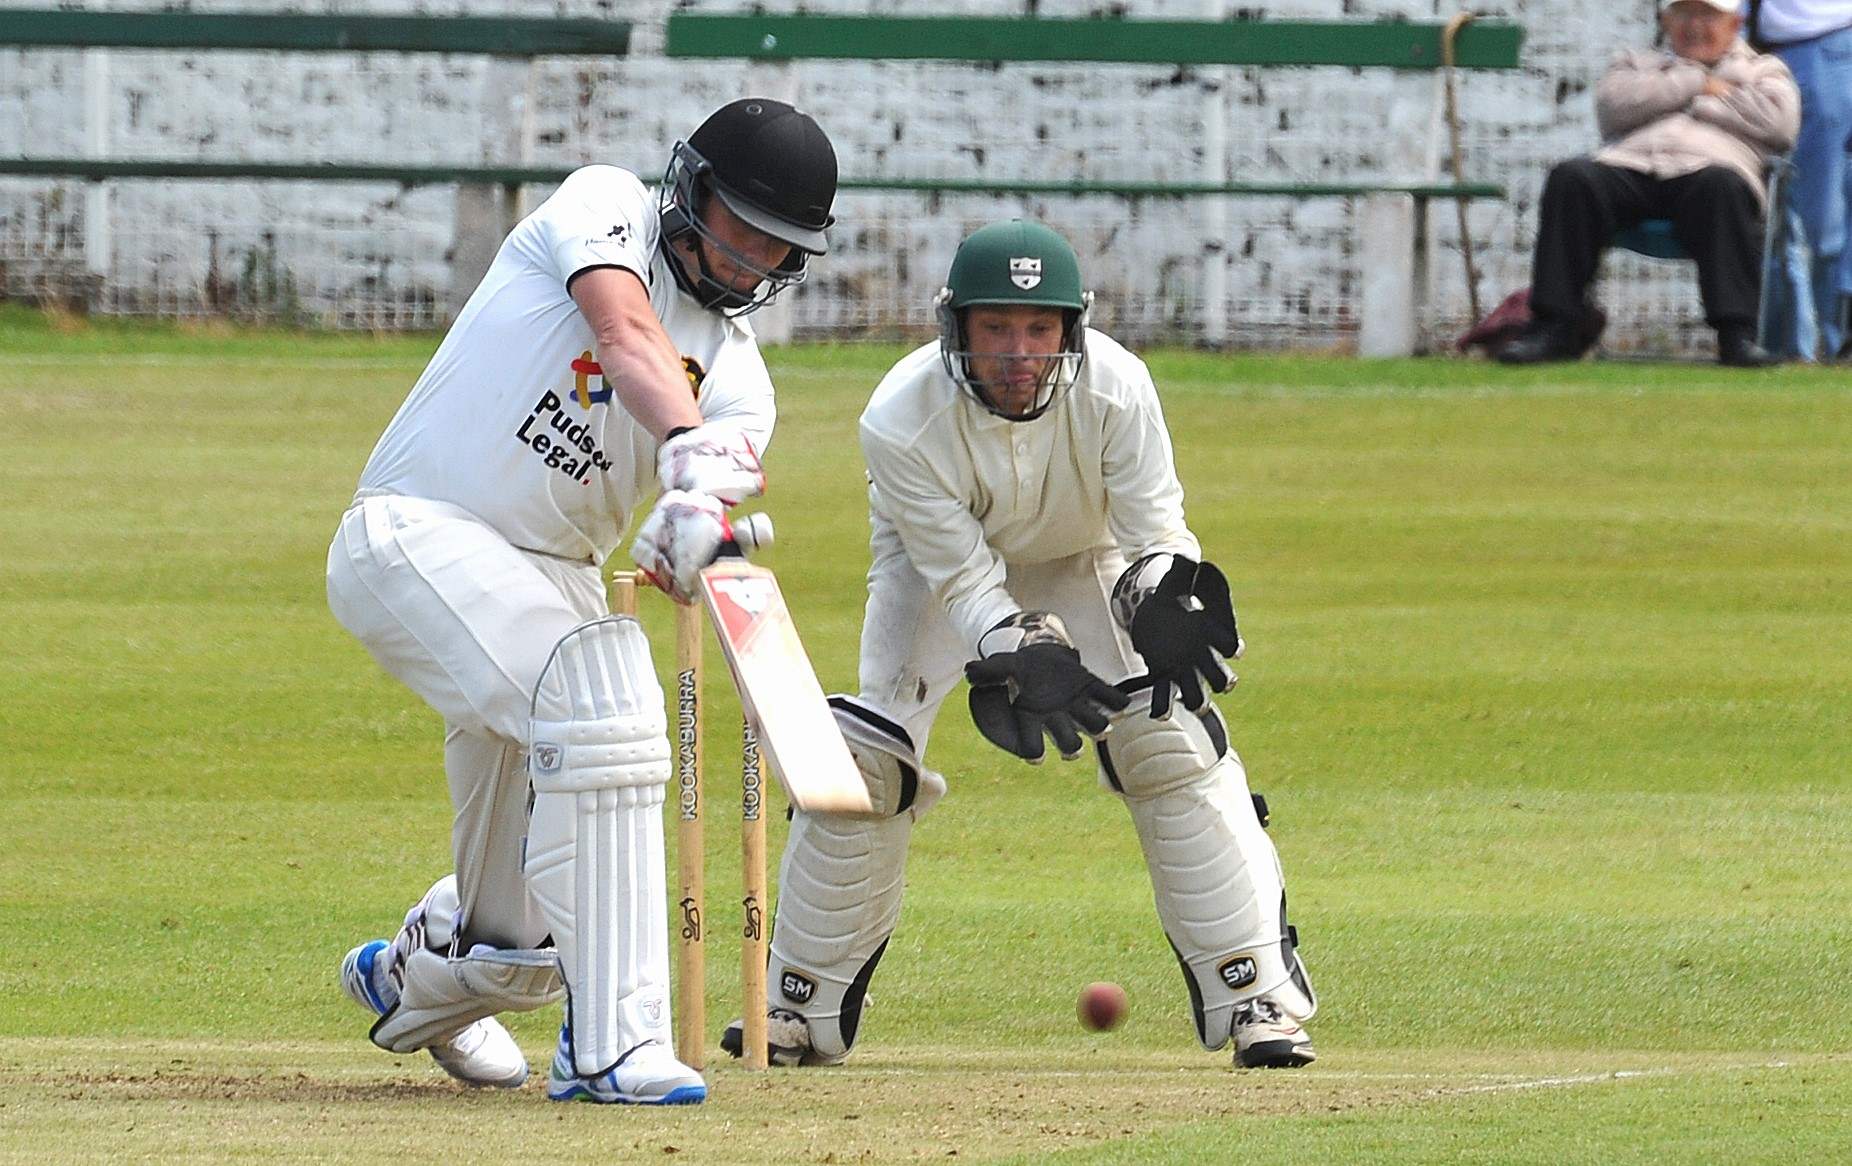 Pudsey St Lawrence's Mark Robertshaw scored 85 before being out within sight of victory